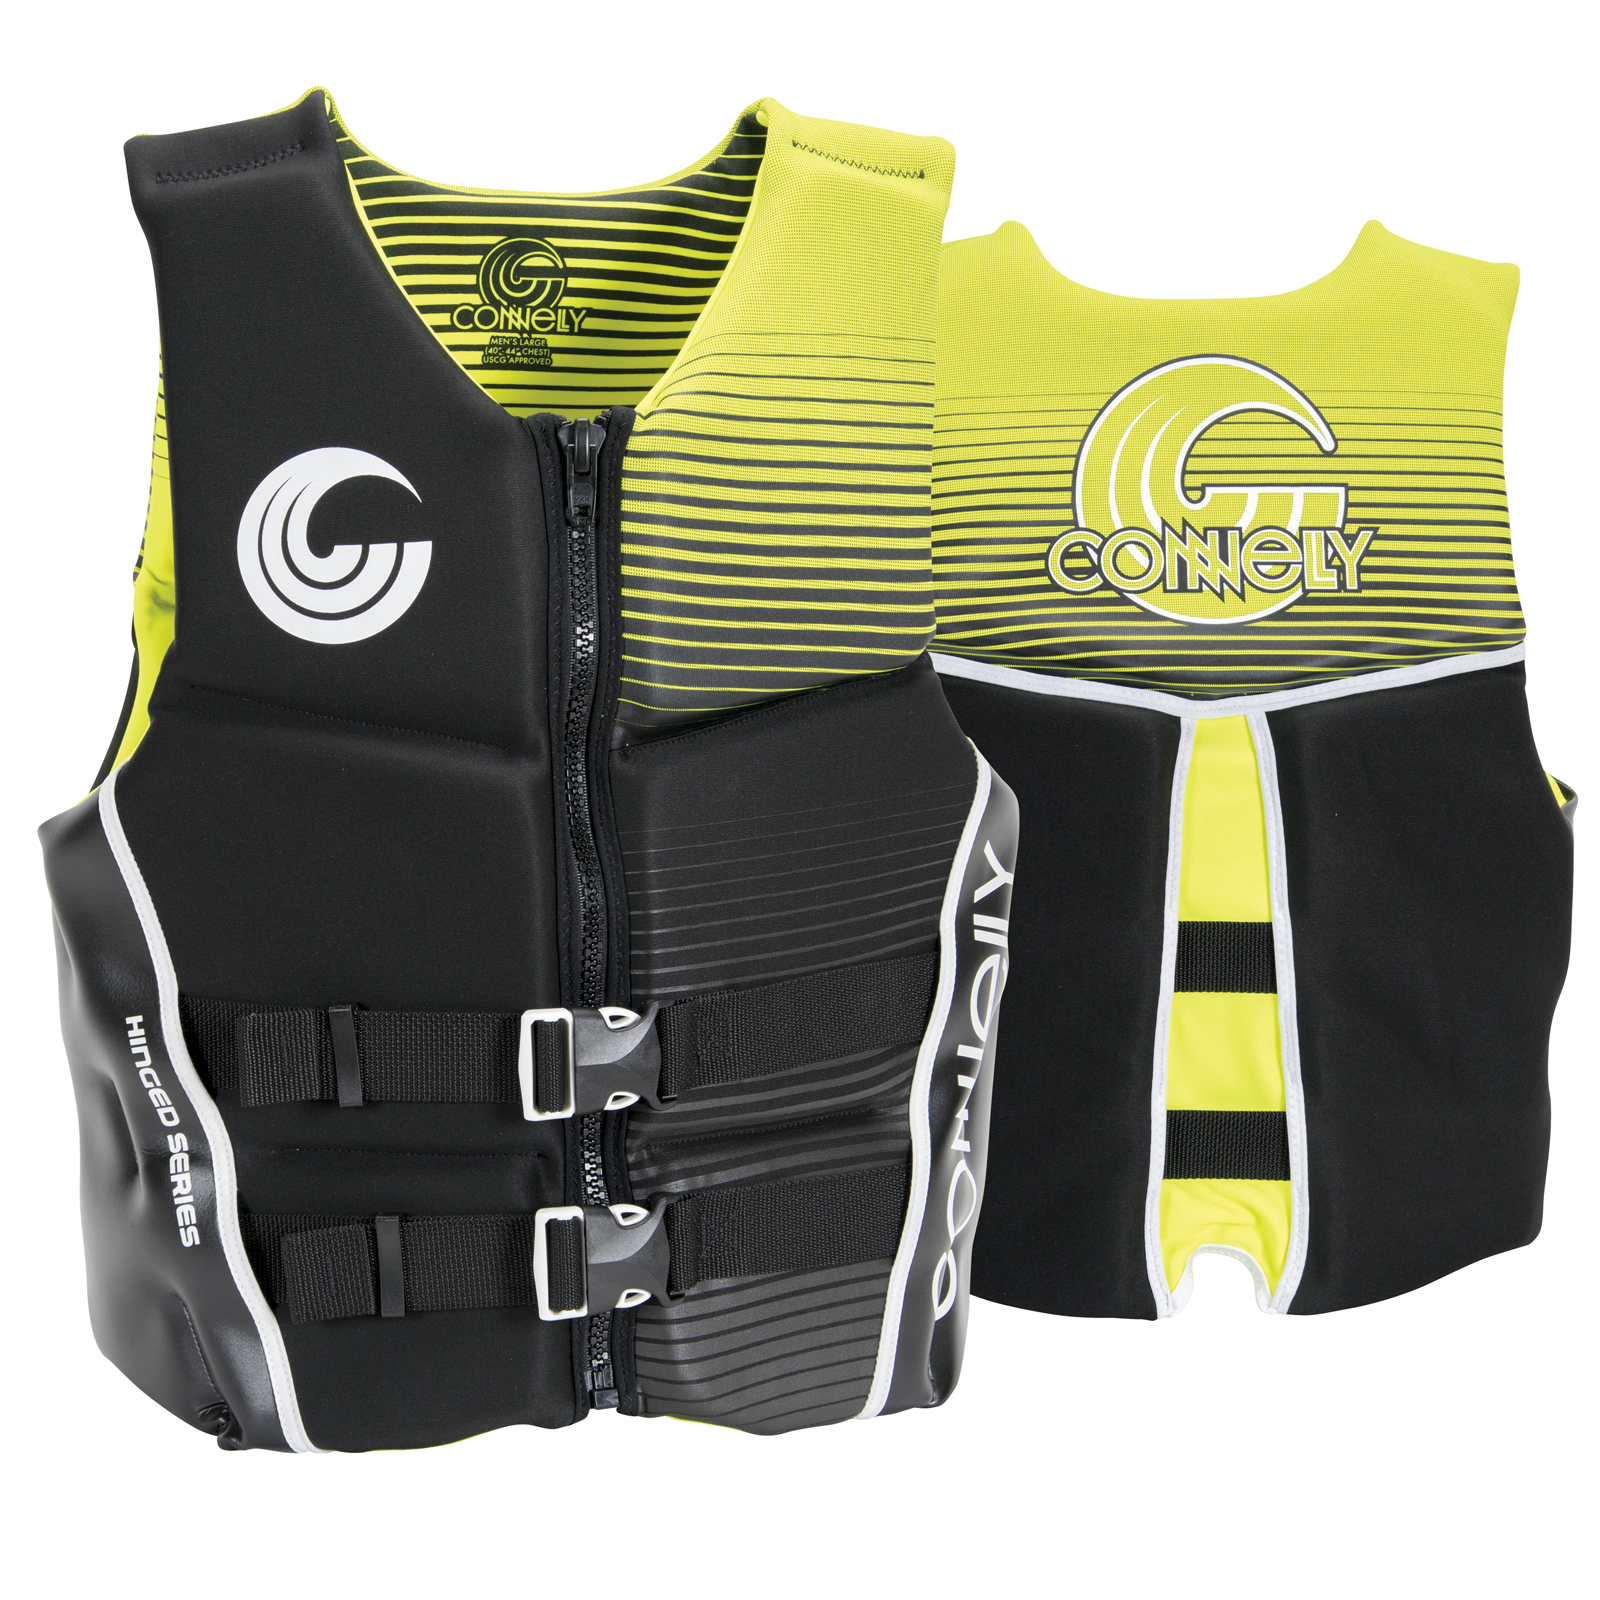 CLASSIC NEO LIFE VEST CONNELLY 2018